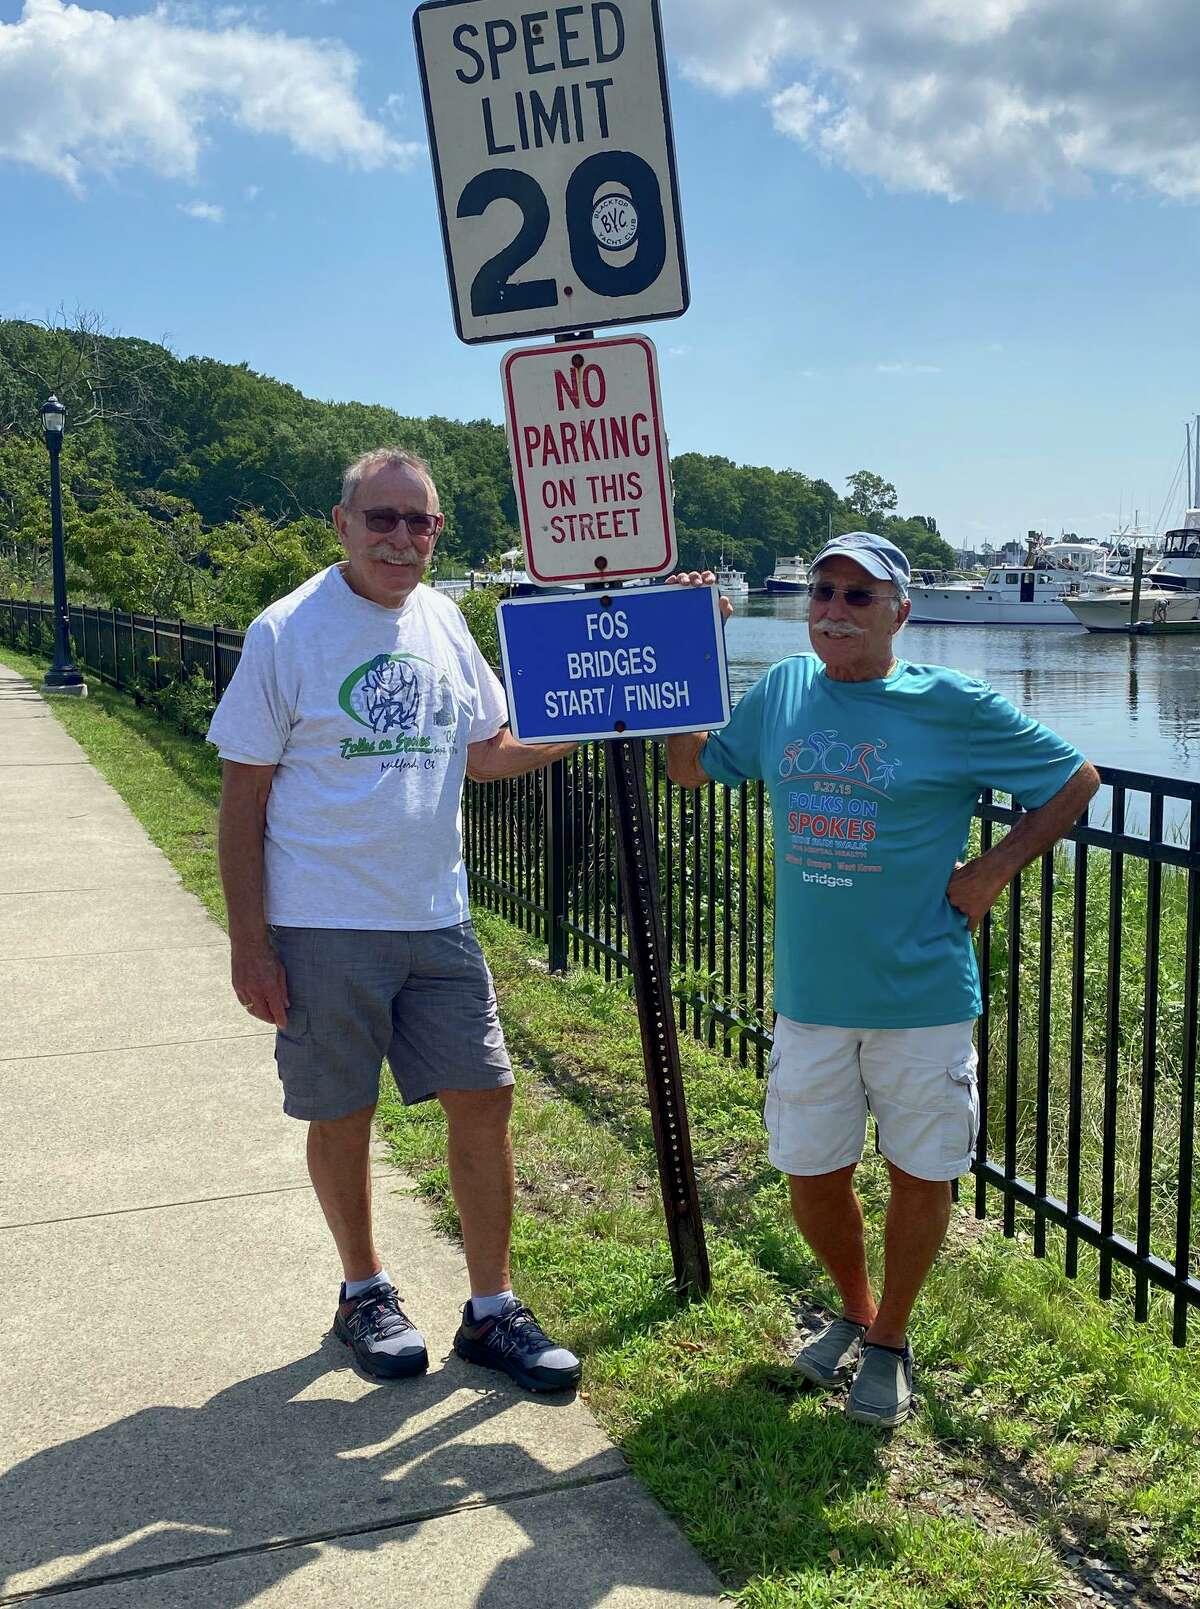 Event founders, Al Diamond and Ray Vitali are Grand Marshals of 30th anniversary of the Folks on Spokes Ride/Step Forward Walk Fundraiser. The fundraiser, to support Bridges Healthcare's mental health and addiction recovery services is on Oct. 3.